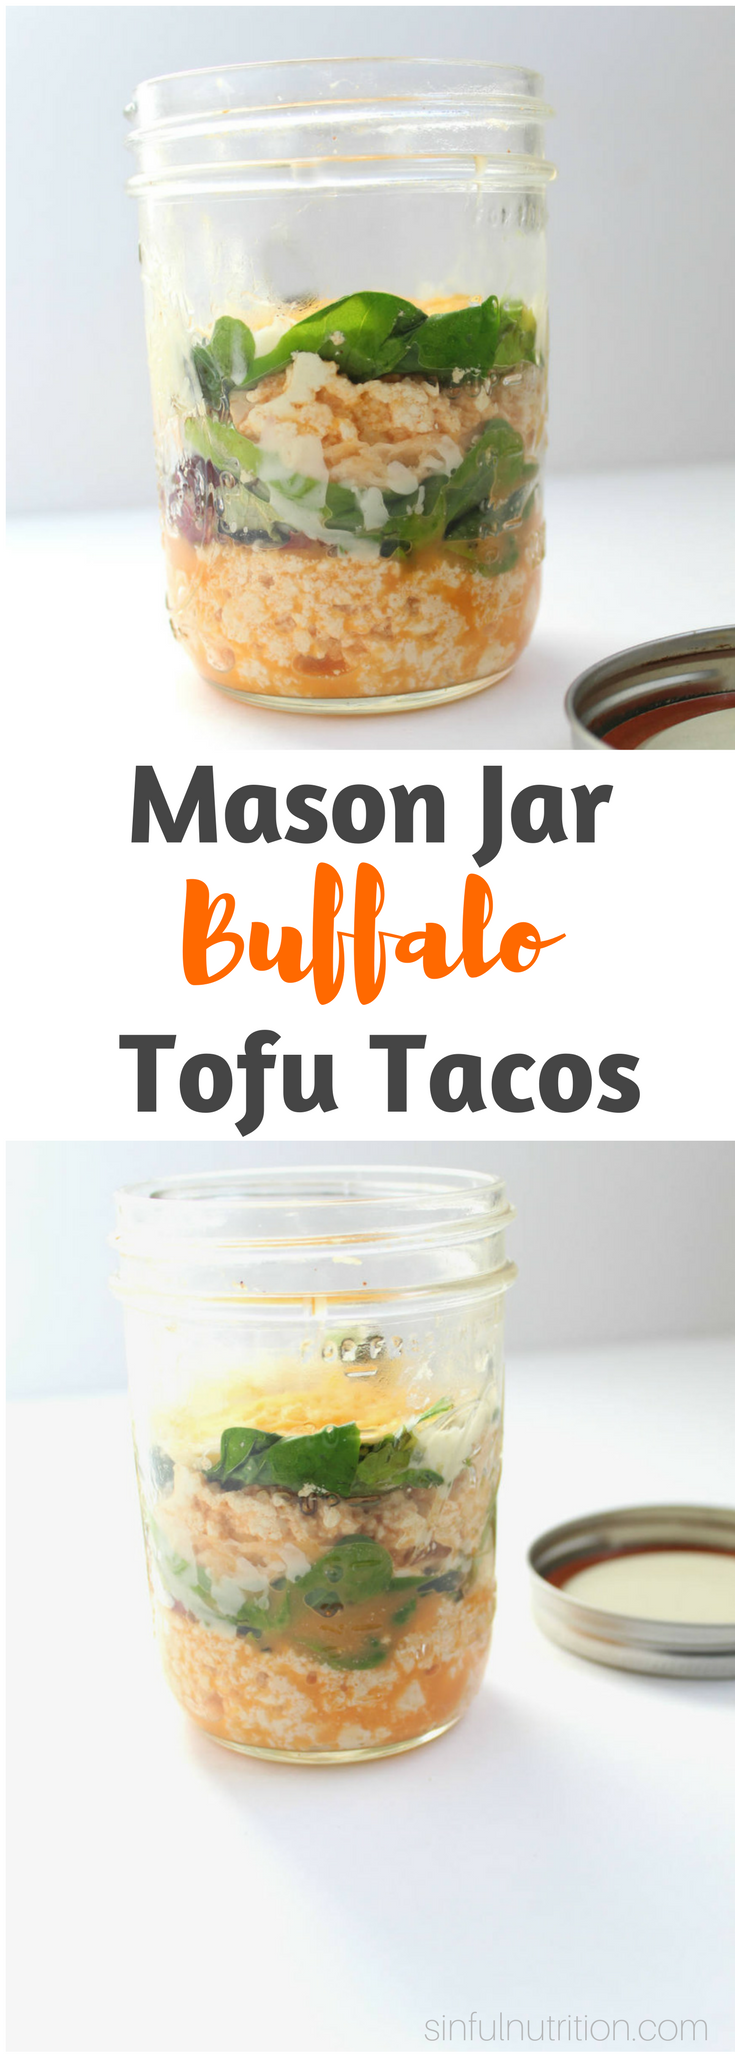 Mason Jar Tofu Buffalo Tacos Recipe -- Take your tacos on the go for a perfectly portable vegetarian lunch or dinner! | @sinfulnutrition